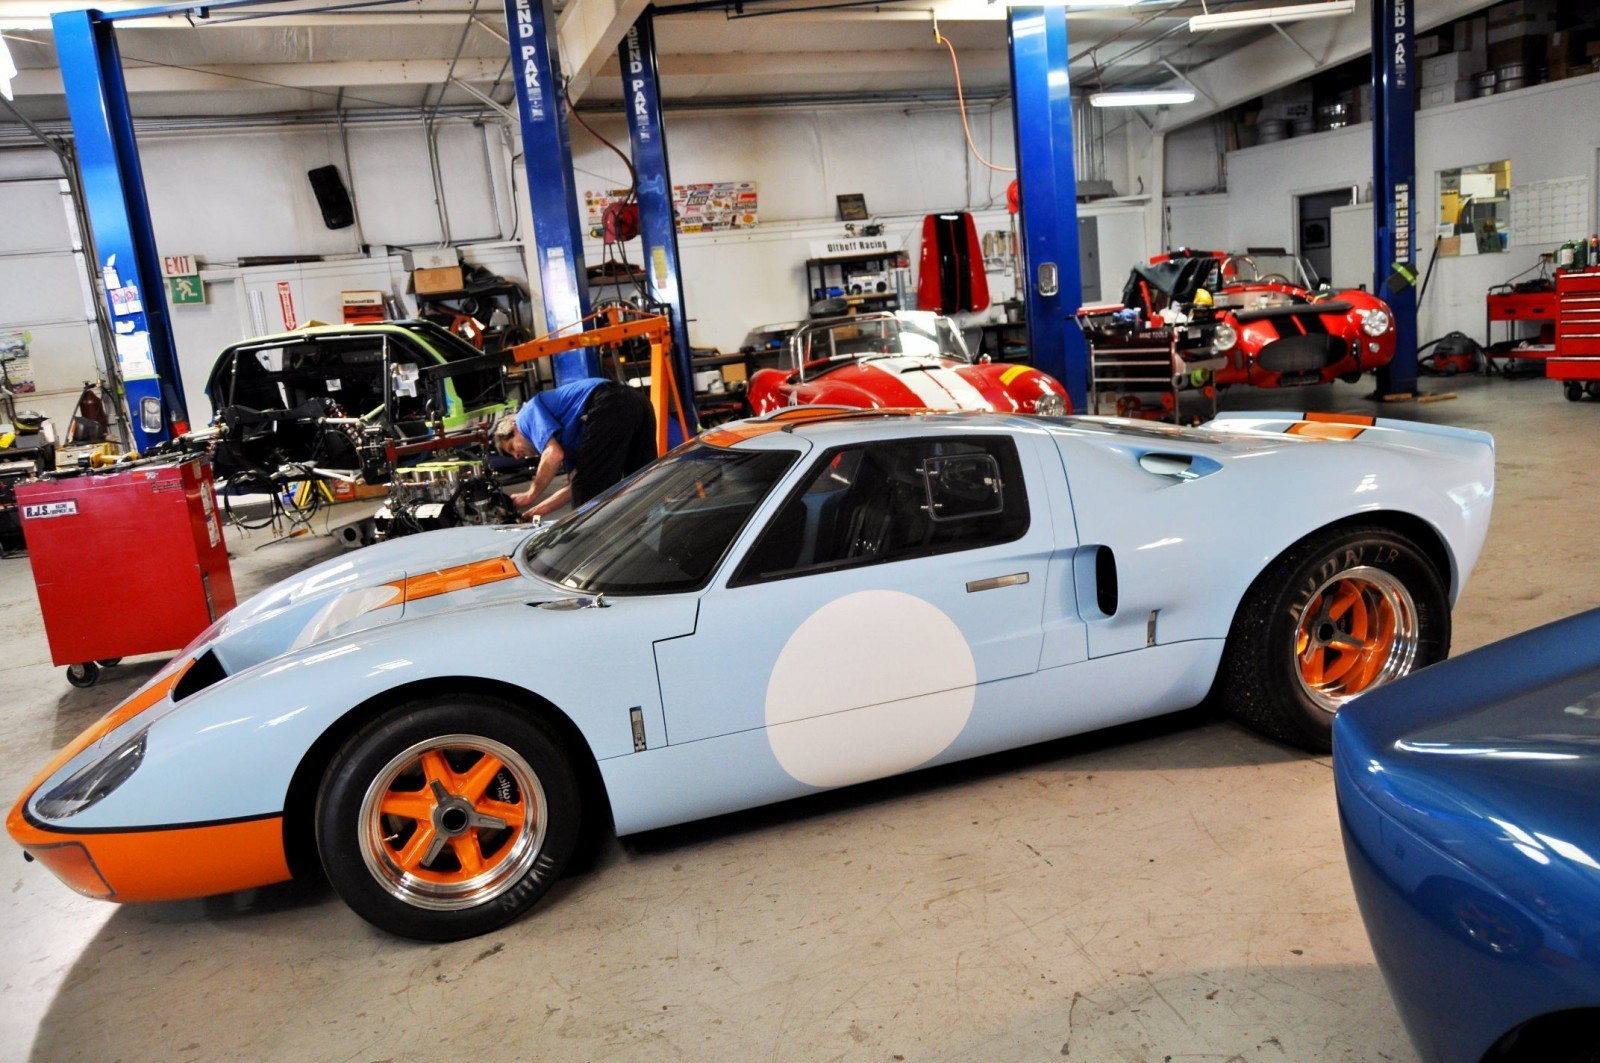 2014 Superformance GT40 Mark I - MEGA Photo Shoot and Ride-Along Videos 12